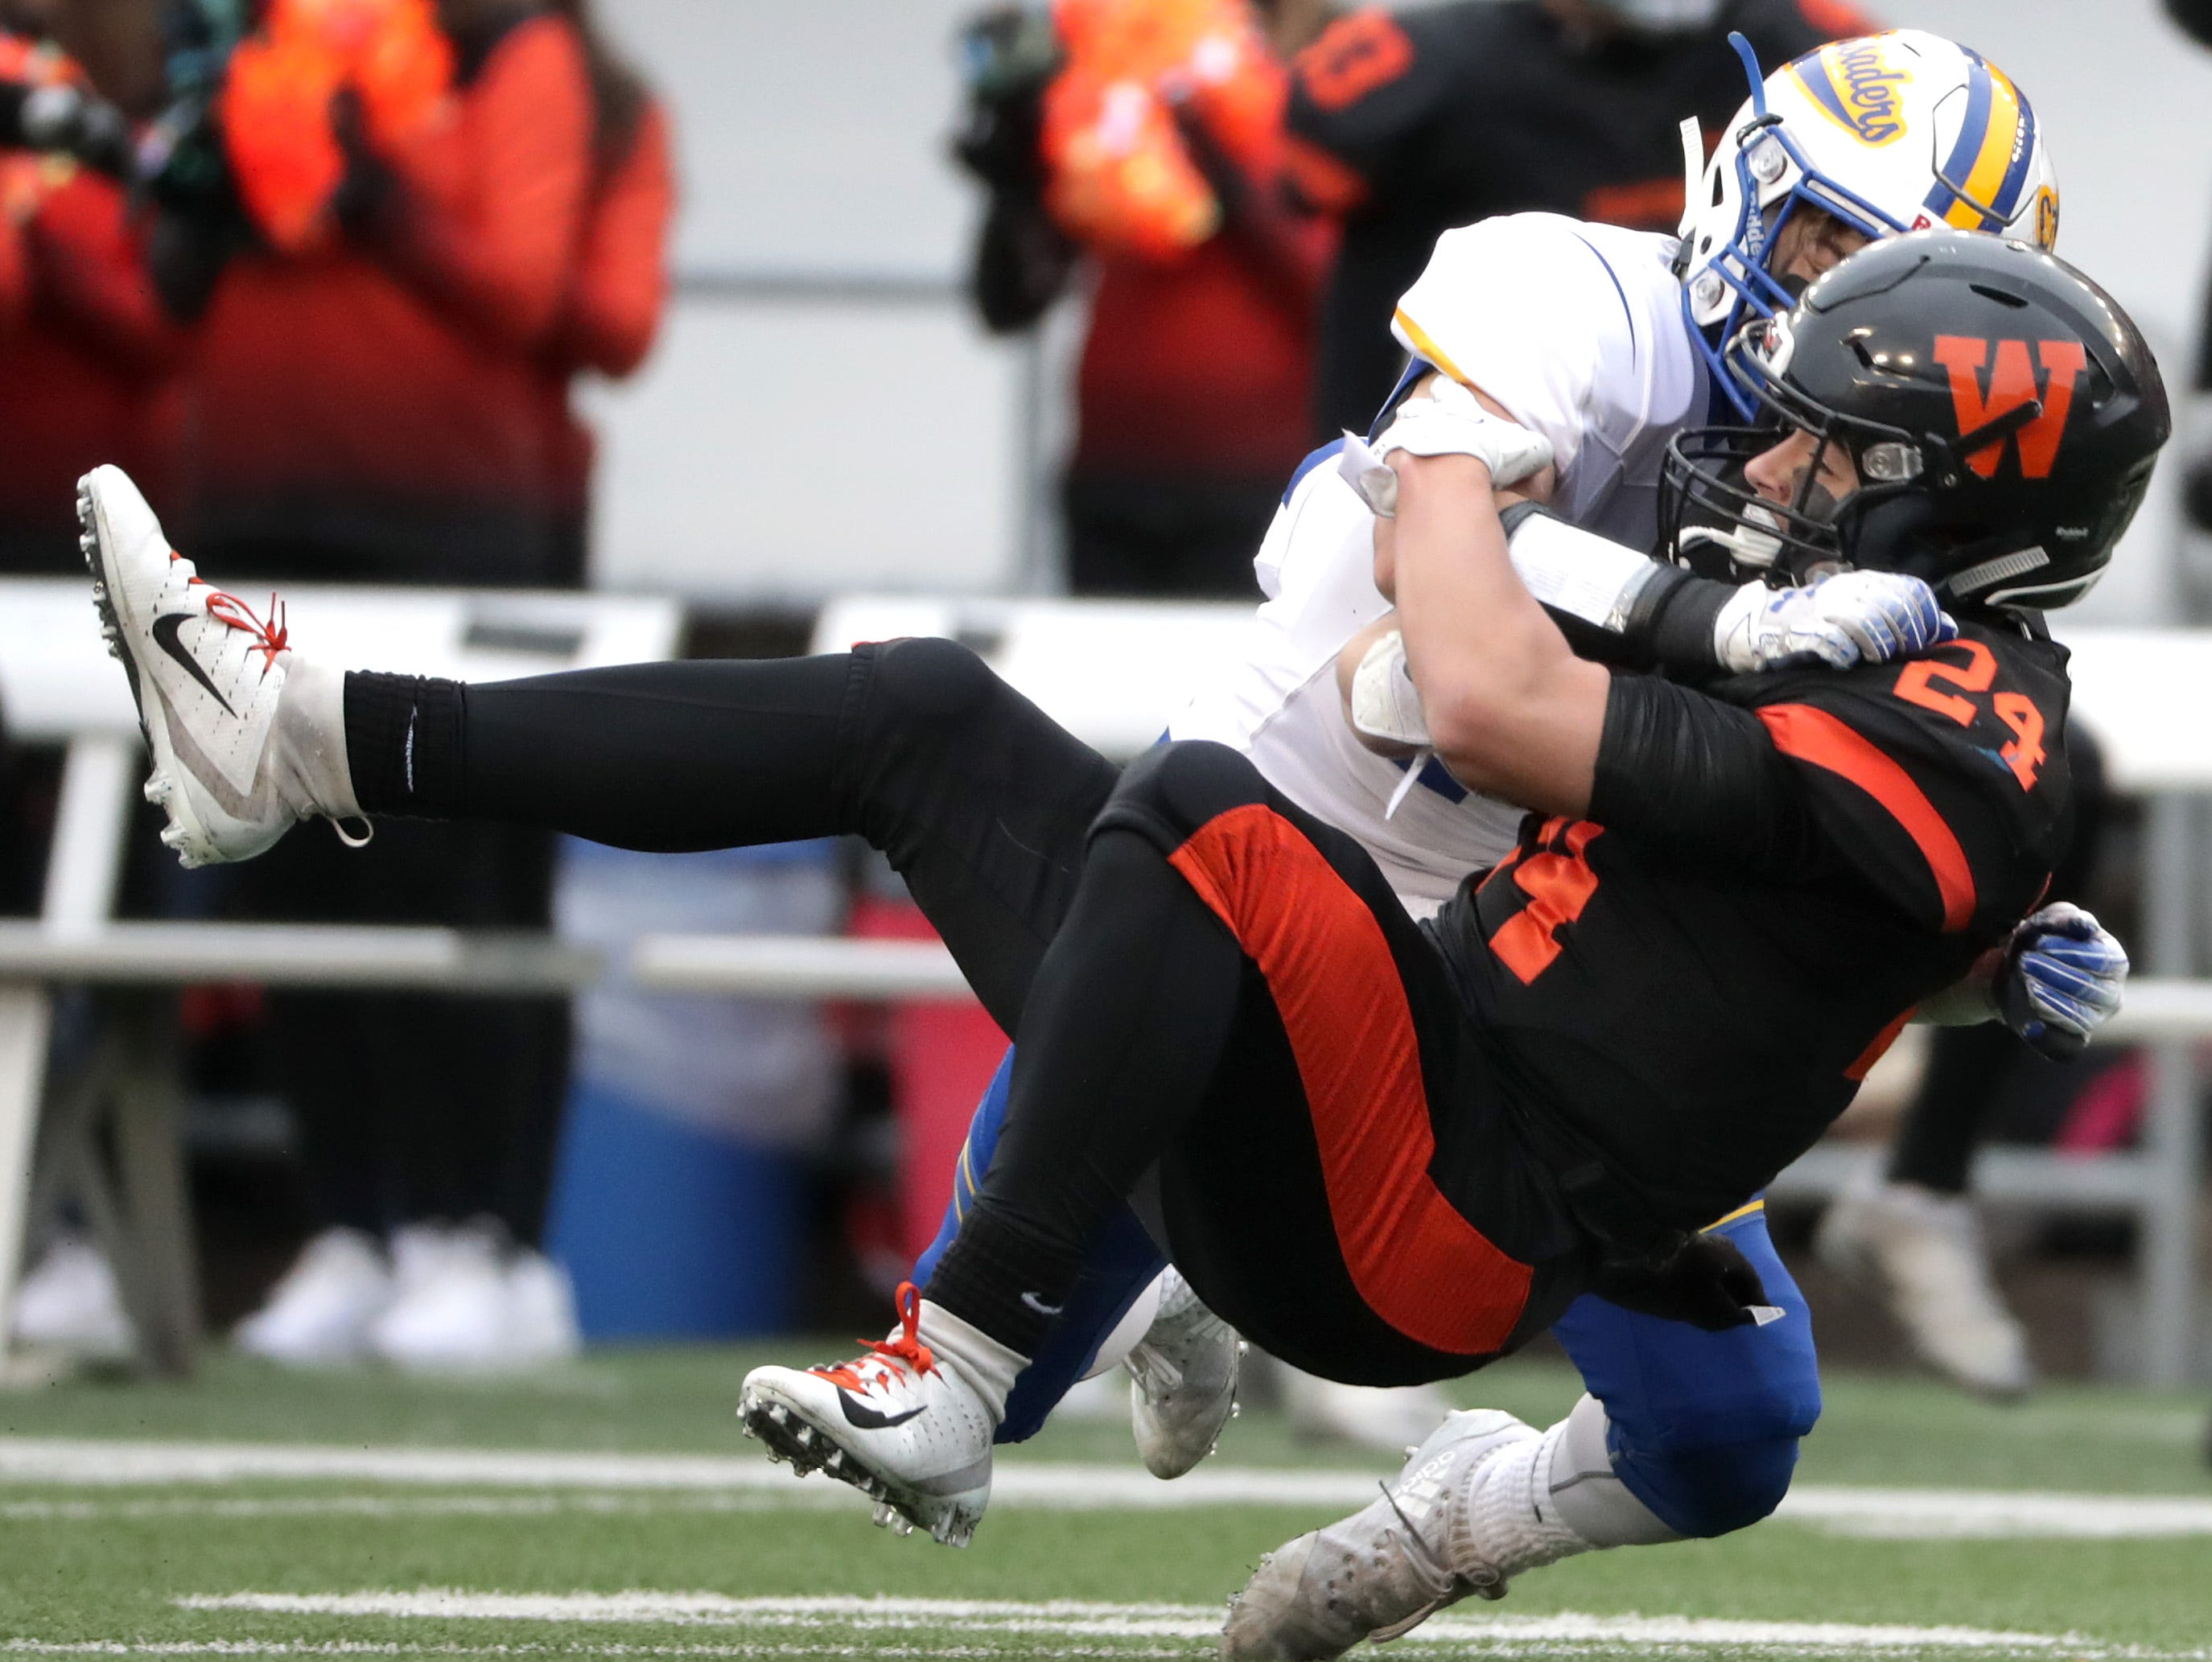 West De Pere High School's #24 Sam Mommaerts against Catholic Memorial High School's #24 Alex Oechsner during the WIAA Division  3 state championship football game on Friday, November 16, 2018, at Camp Randall in Madison, Wis. Wm. Glasheen/USA TODAY NETWORK-Wisconsin.